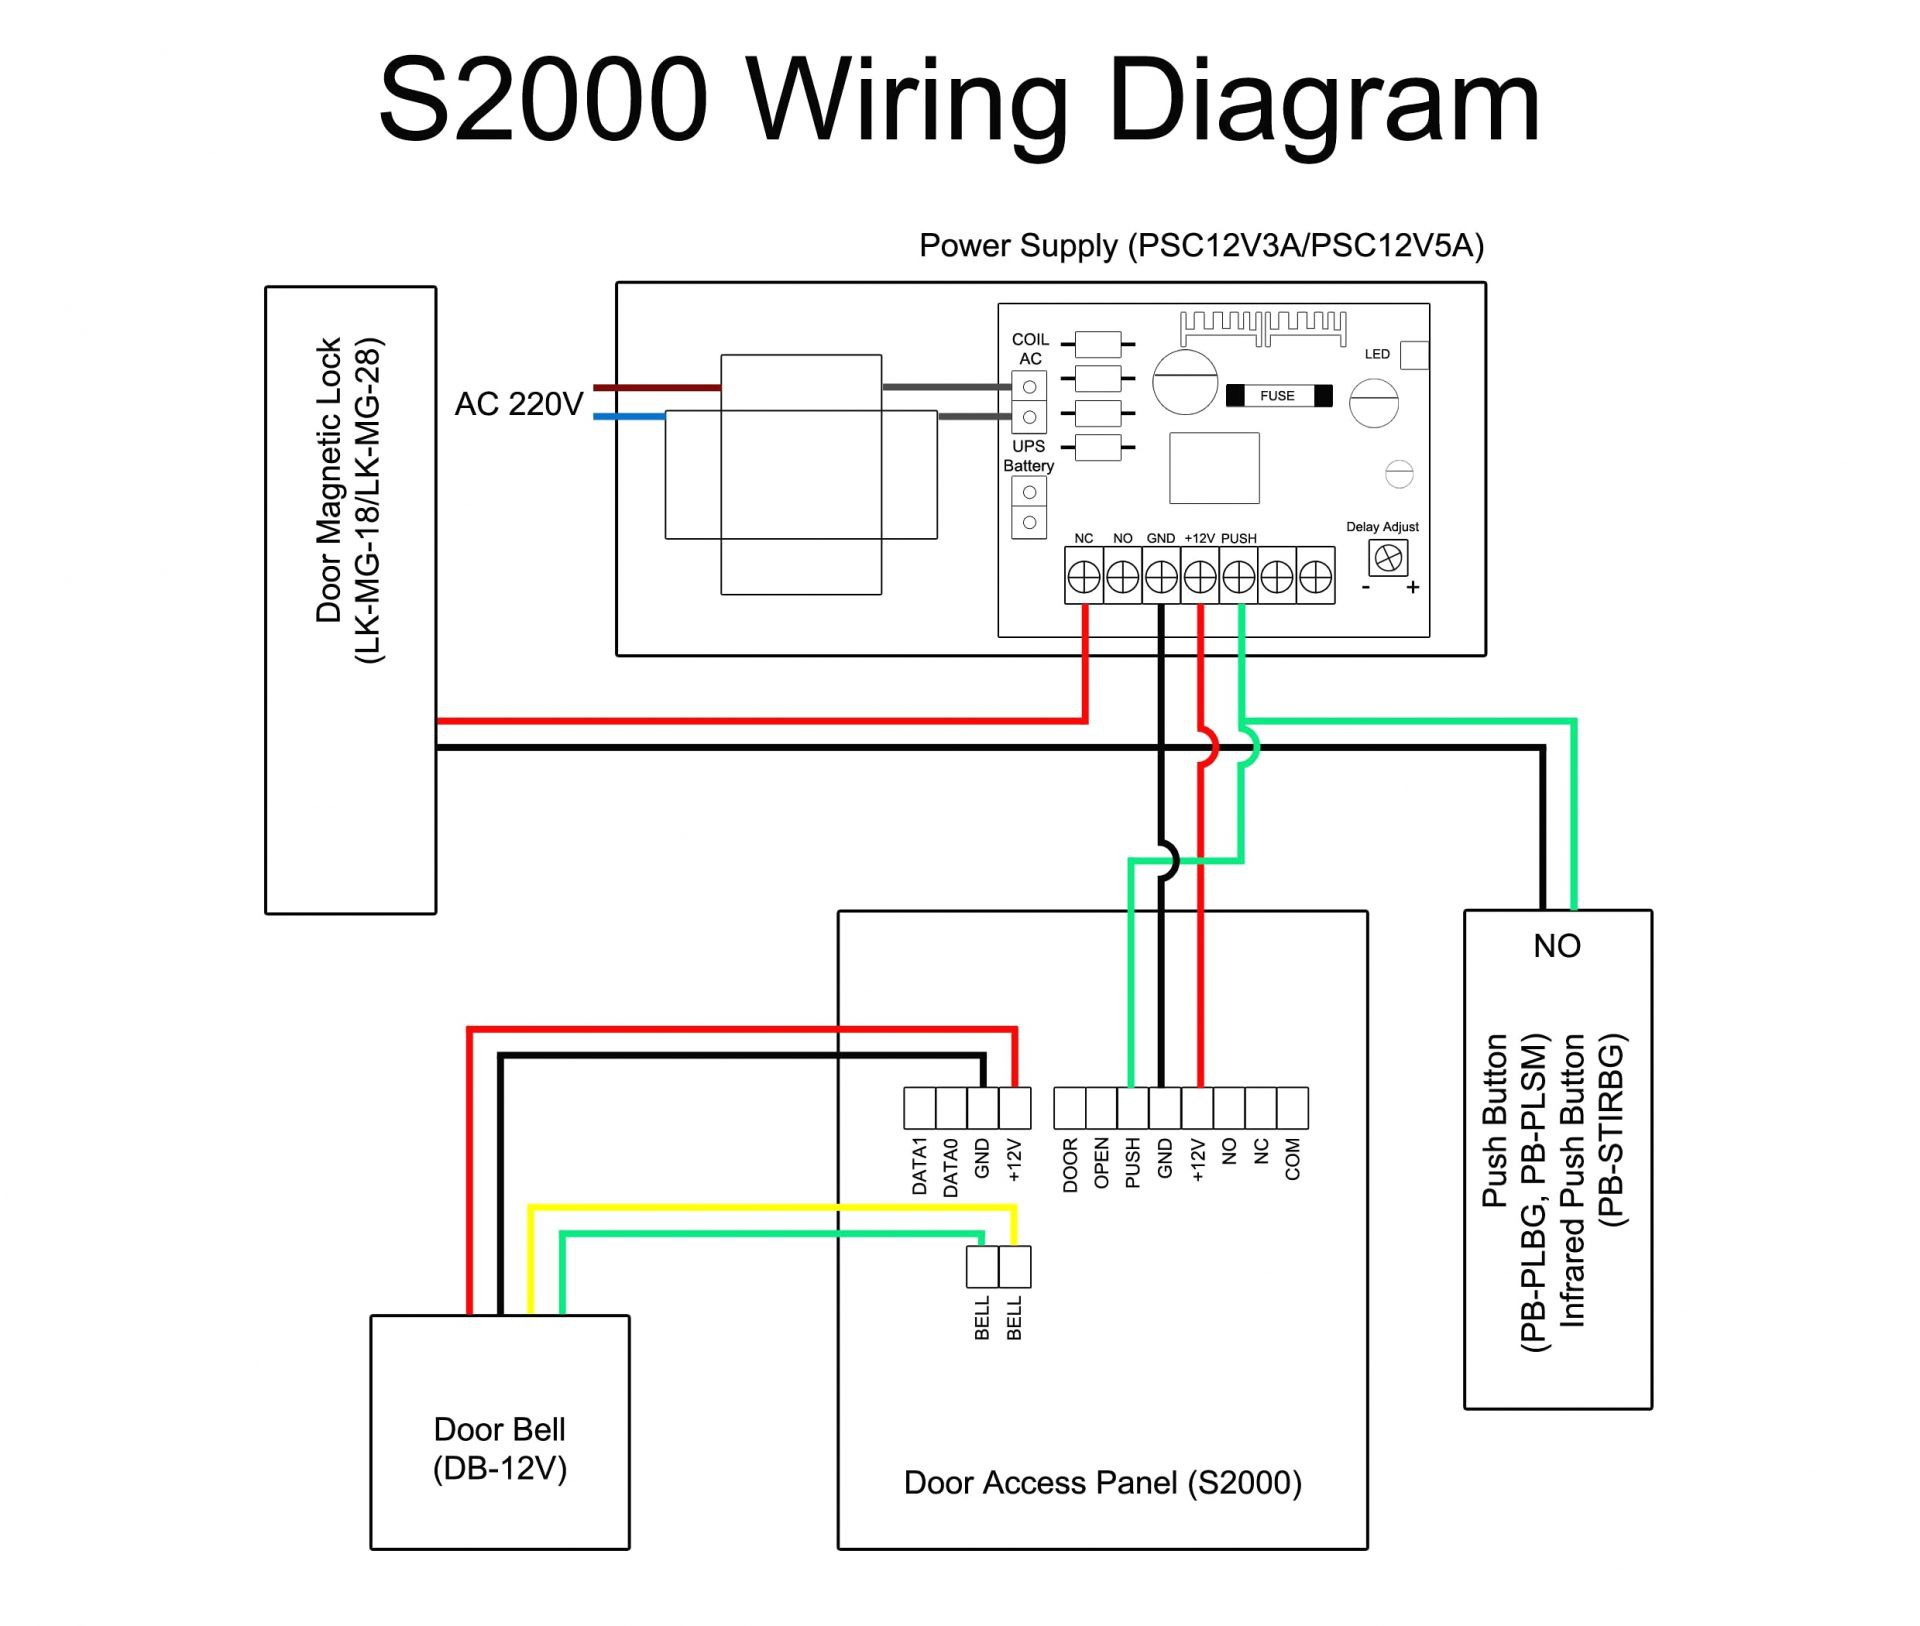 voyager camera wiring diagram Collection-Security Camera Wiring Diagram Inspirational Generous Color Cmos Camerasg6153 Contemporary 13-c